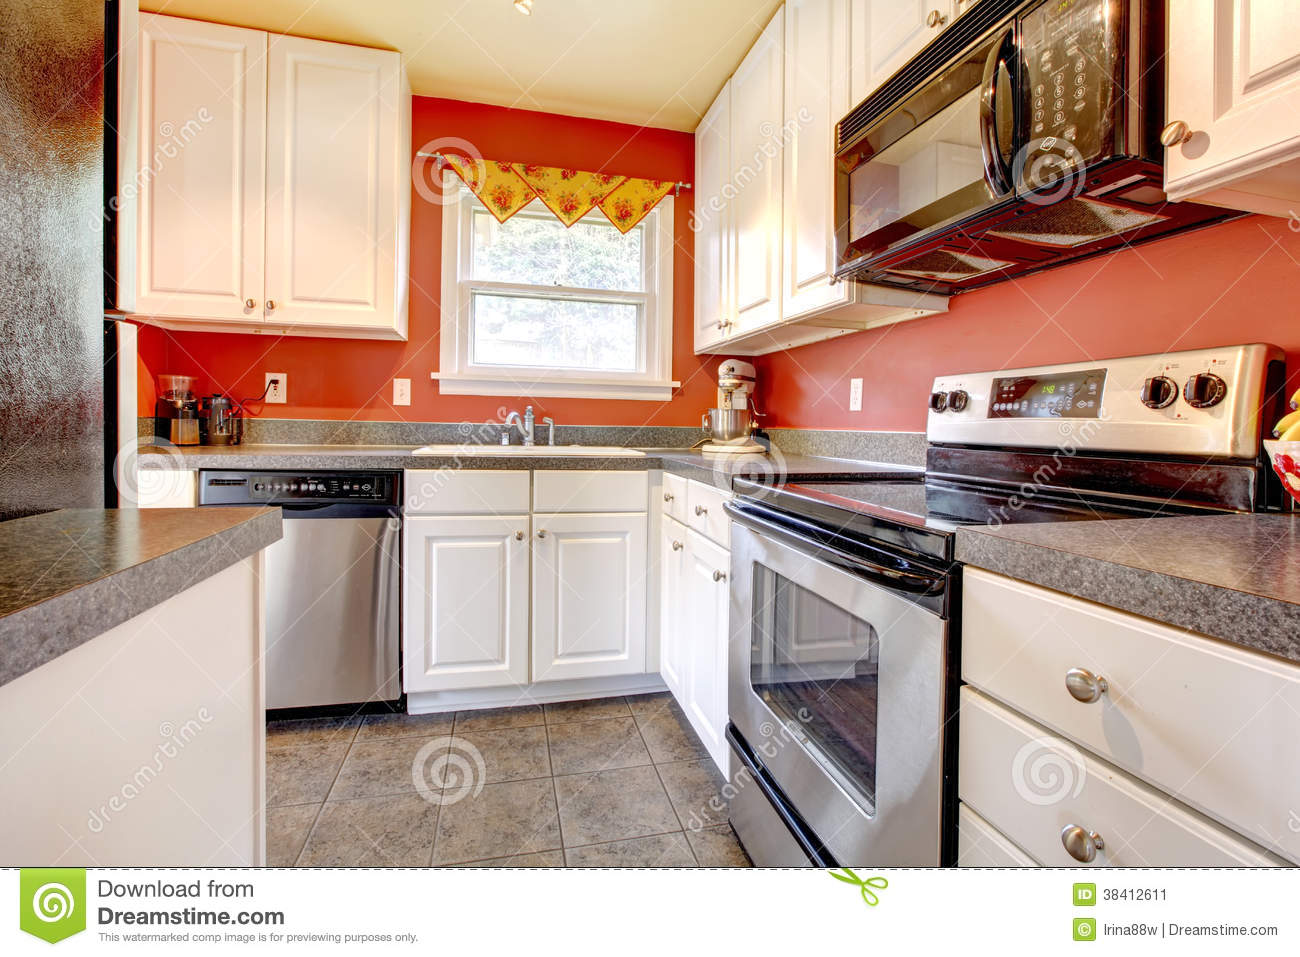 Black And White Kitchen Cabinets With Red Wall photo - 3